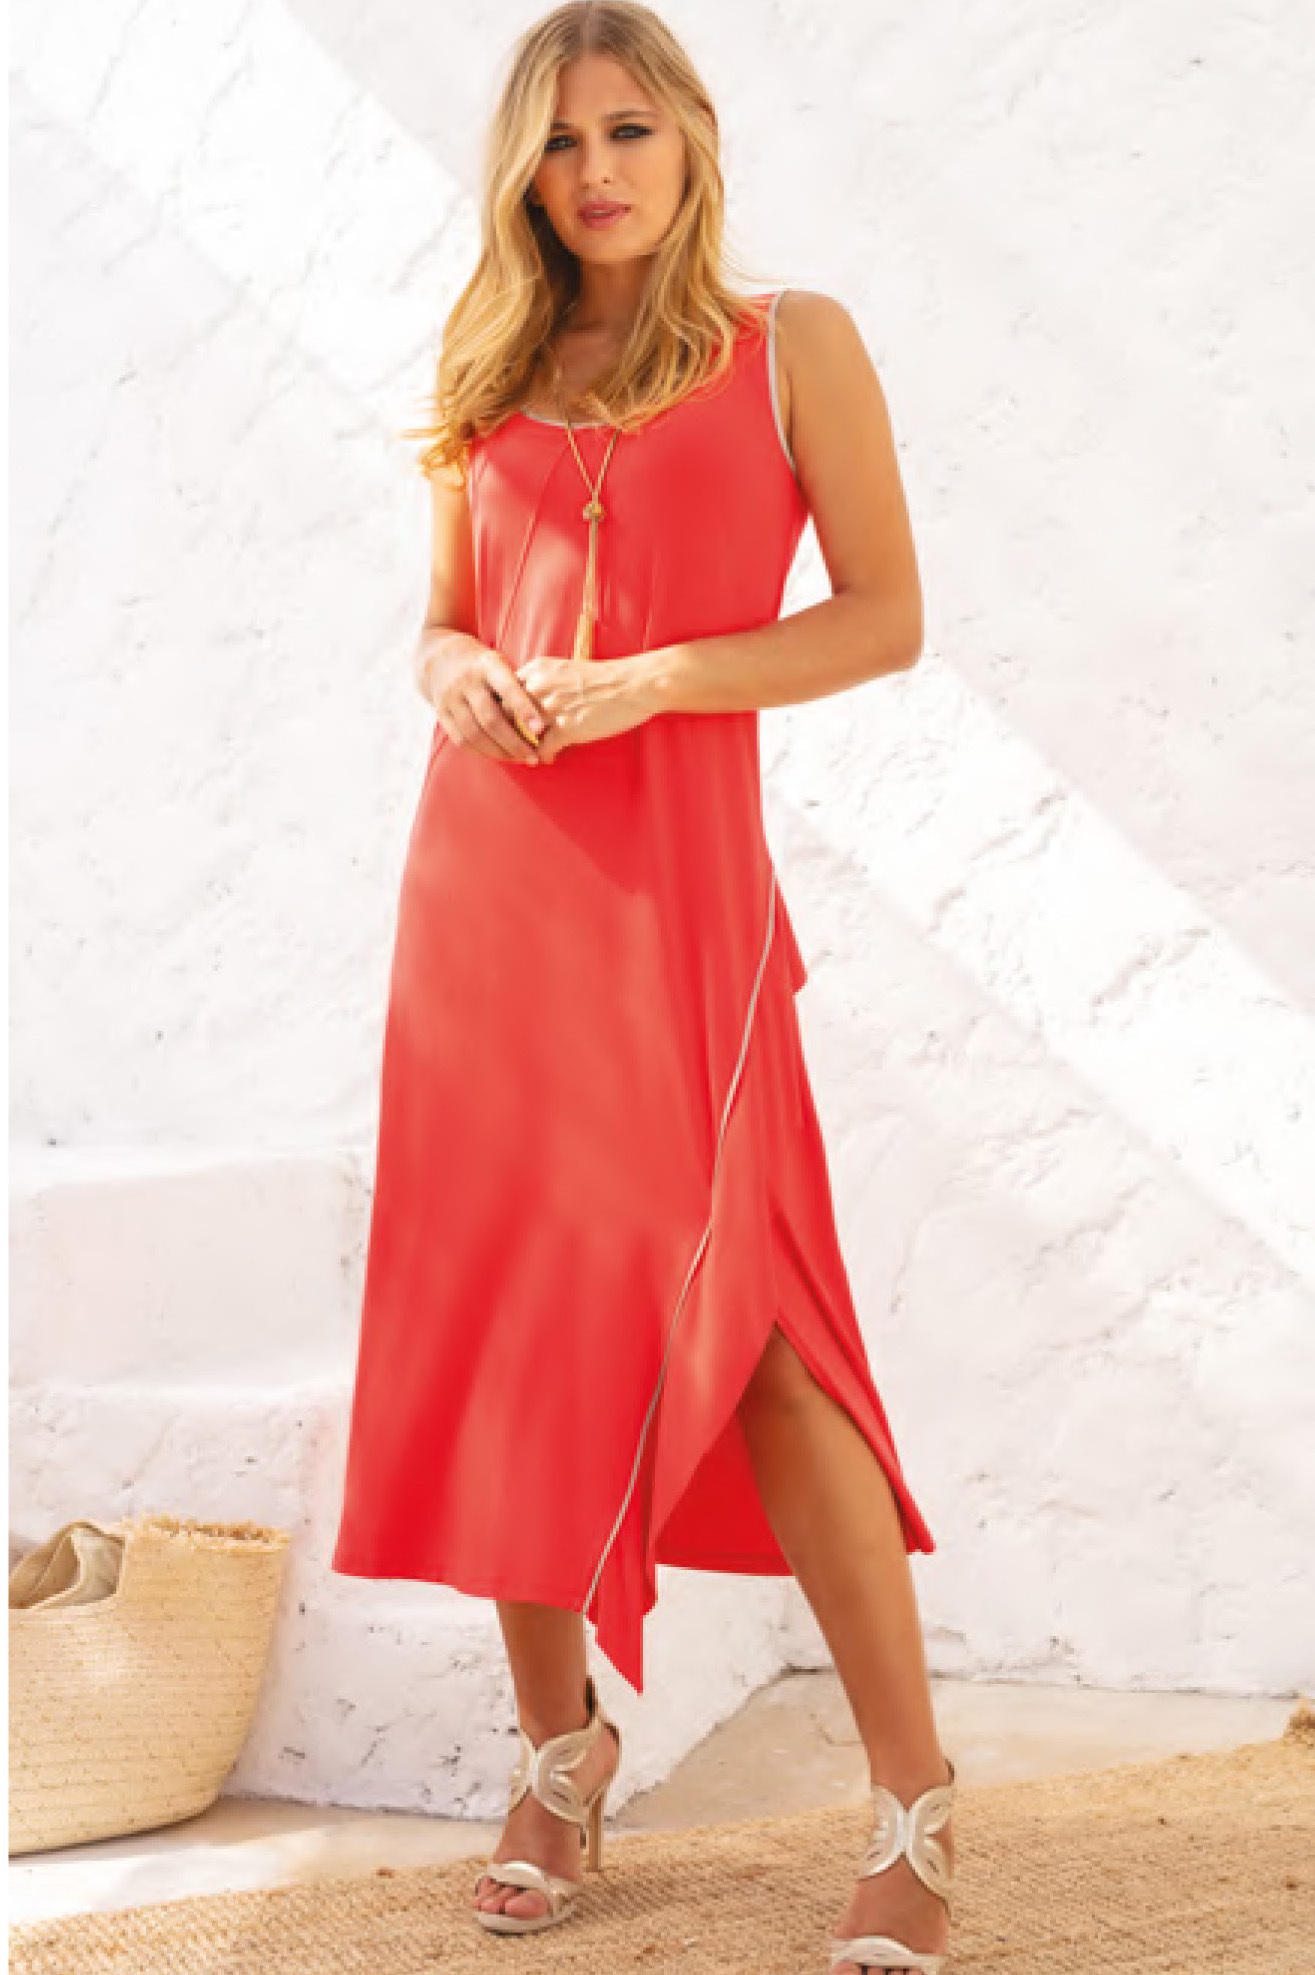 Maloka: Bewitchingly Comfortable Fringed Maxi Dress (Many Colors!)